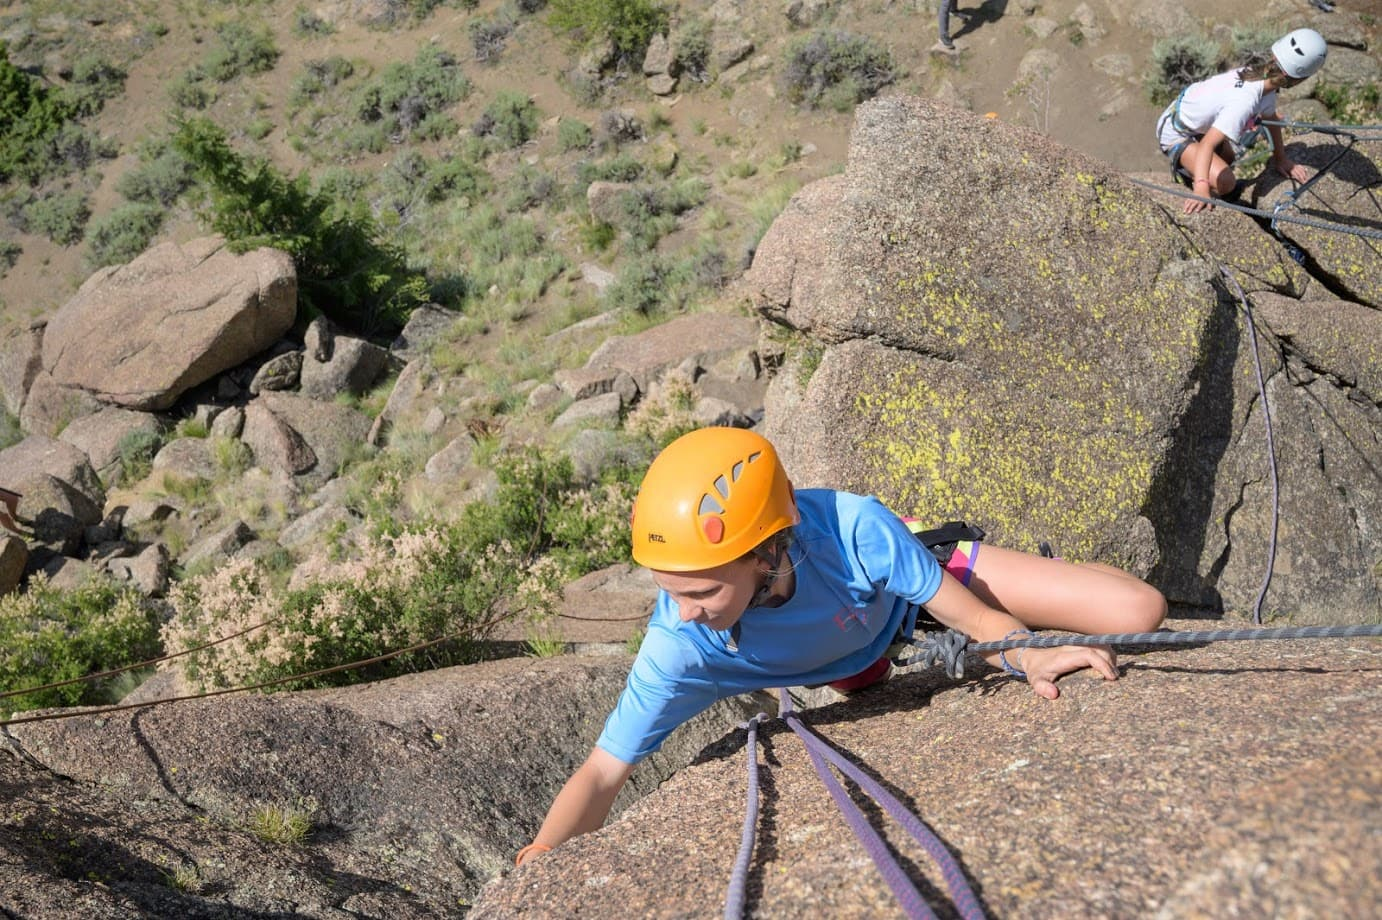 Climbing is super fun when you are on a teen adventure program